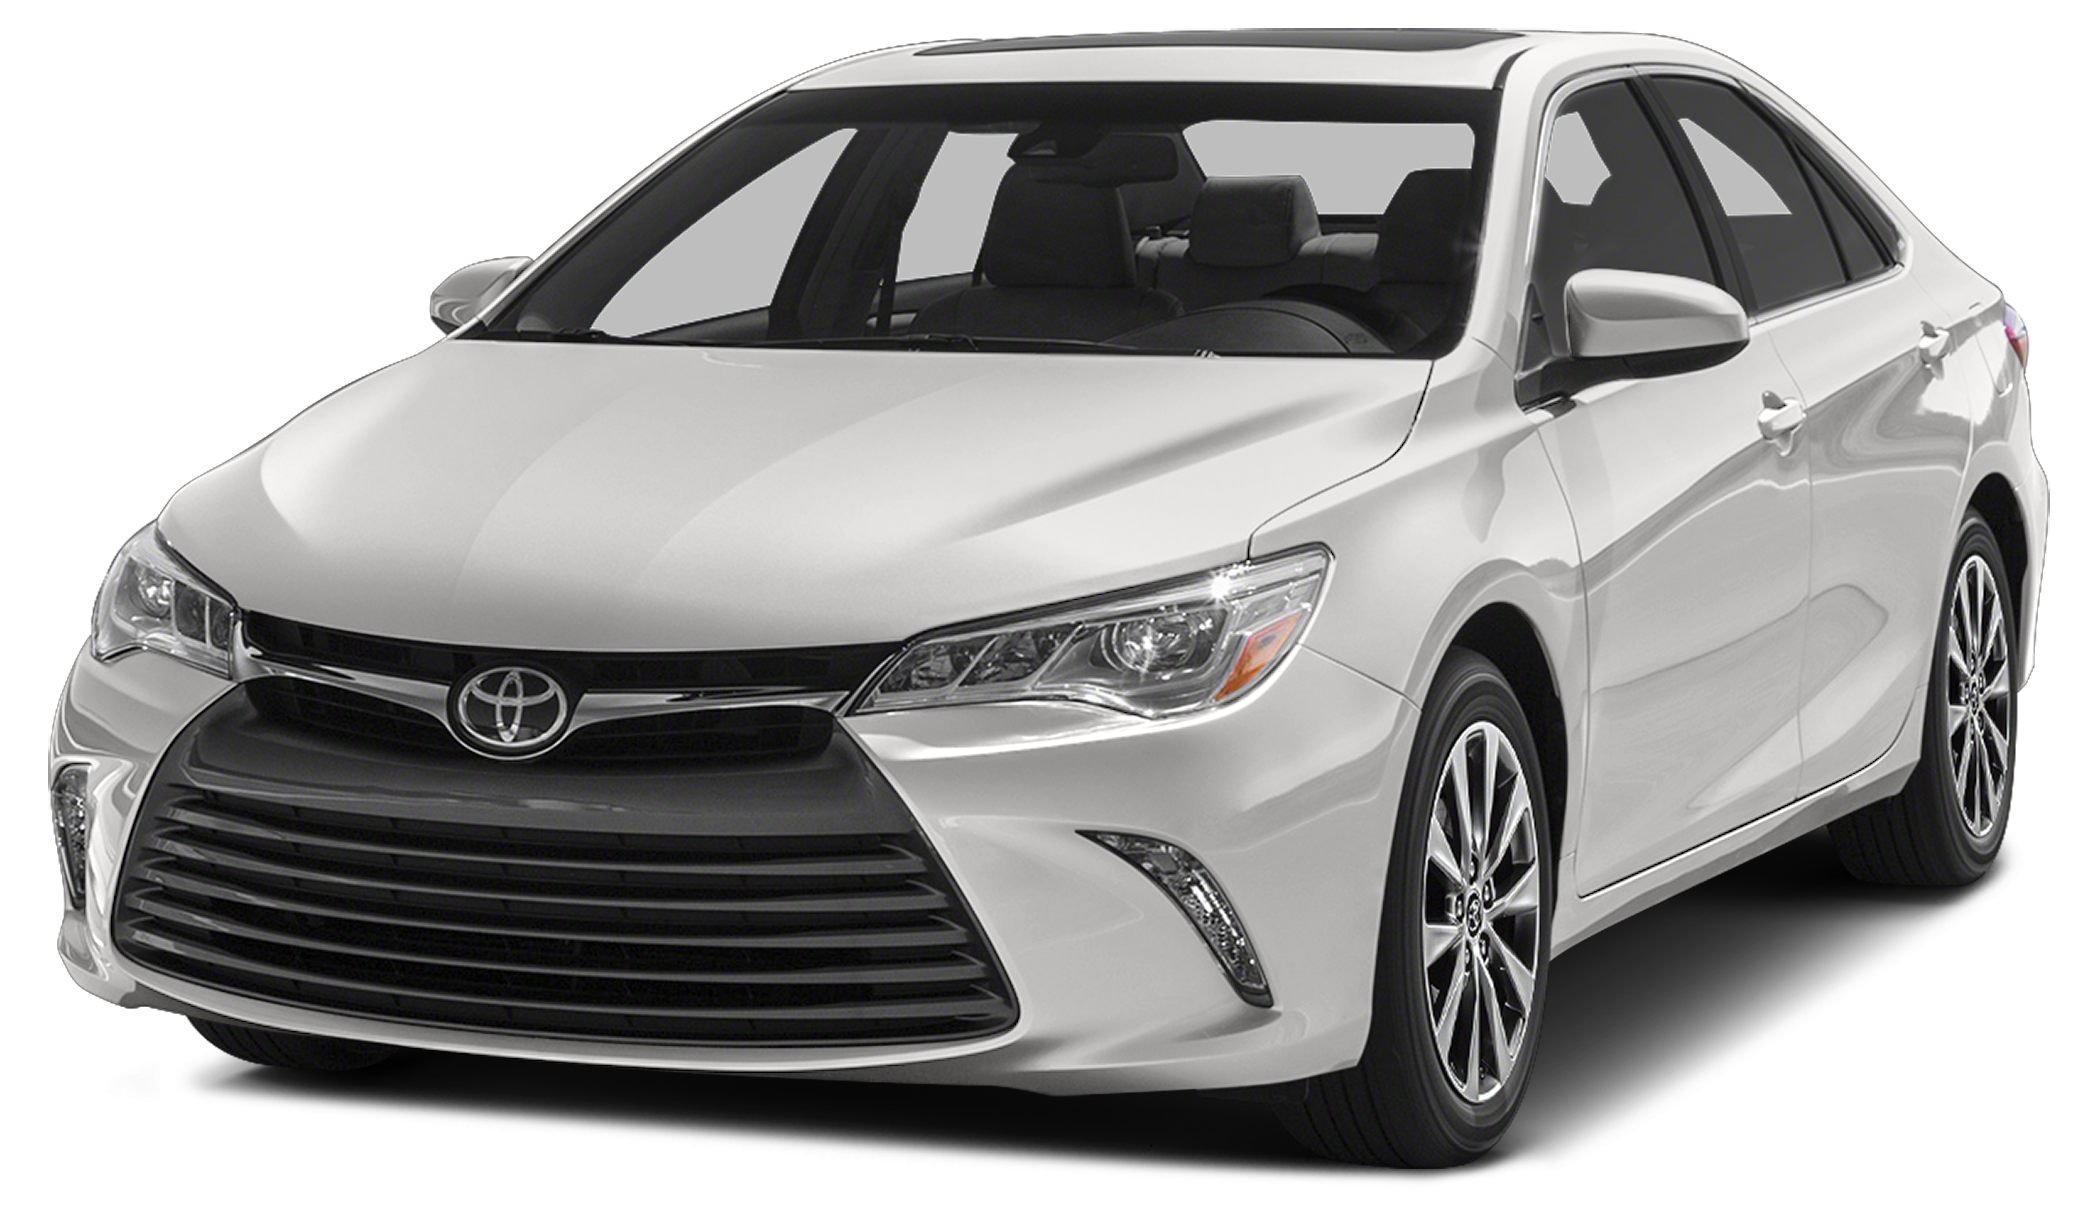 2015 Toyota Camry LE LE trim SUPER WHITE exterior and BLACK interior CARFAX 1-Owner ONLY 37393